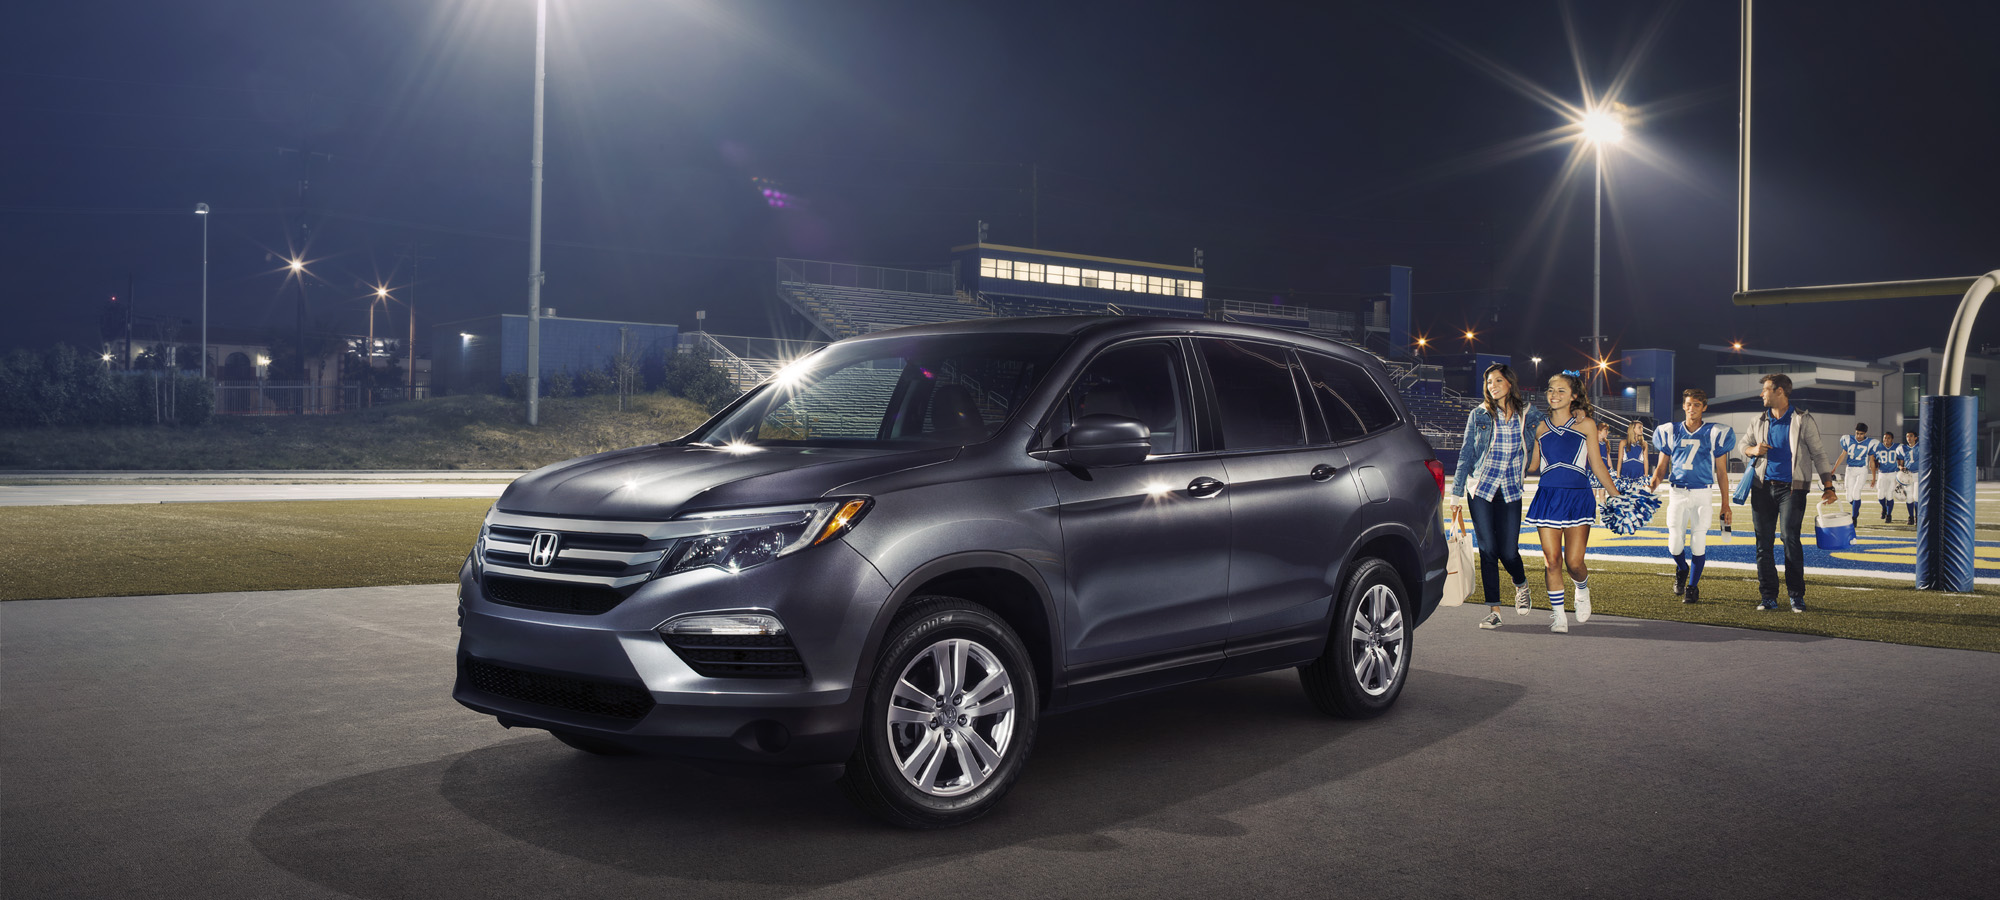 Honda Pilot Lease Deals Milwaukee Lamoureph Blog